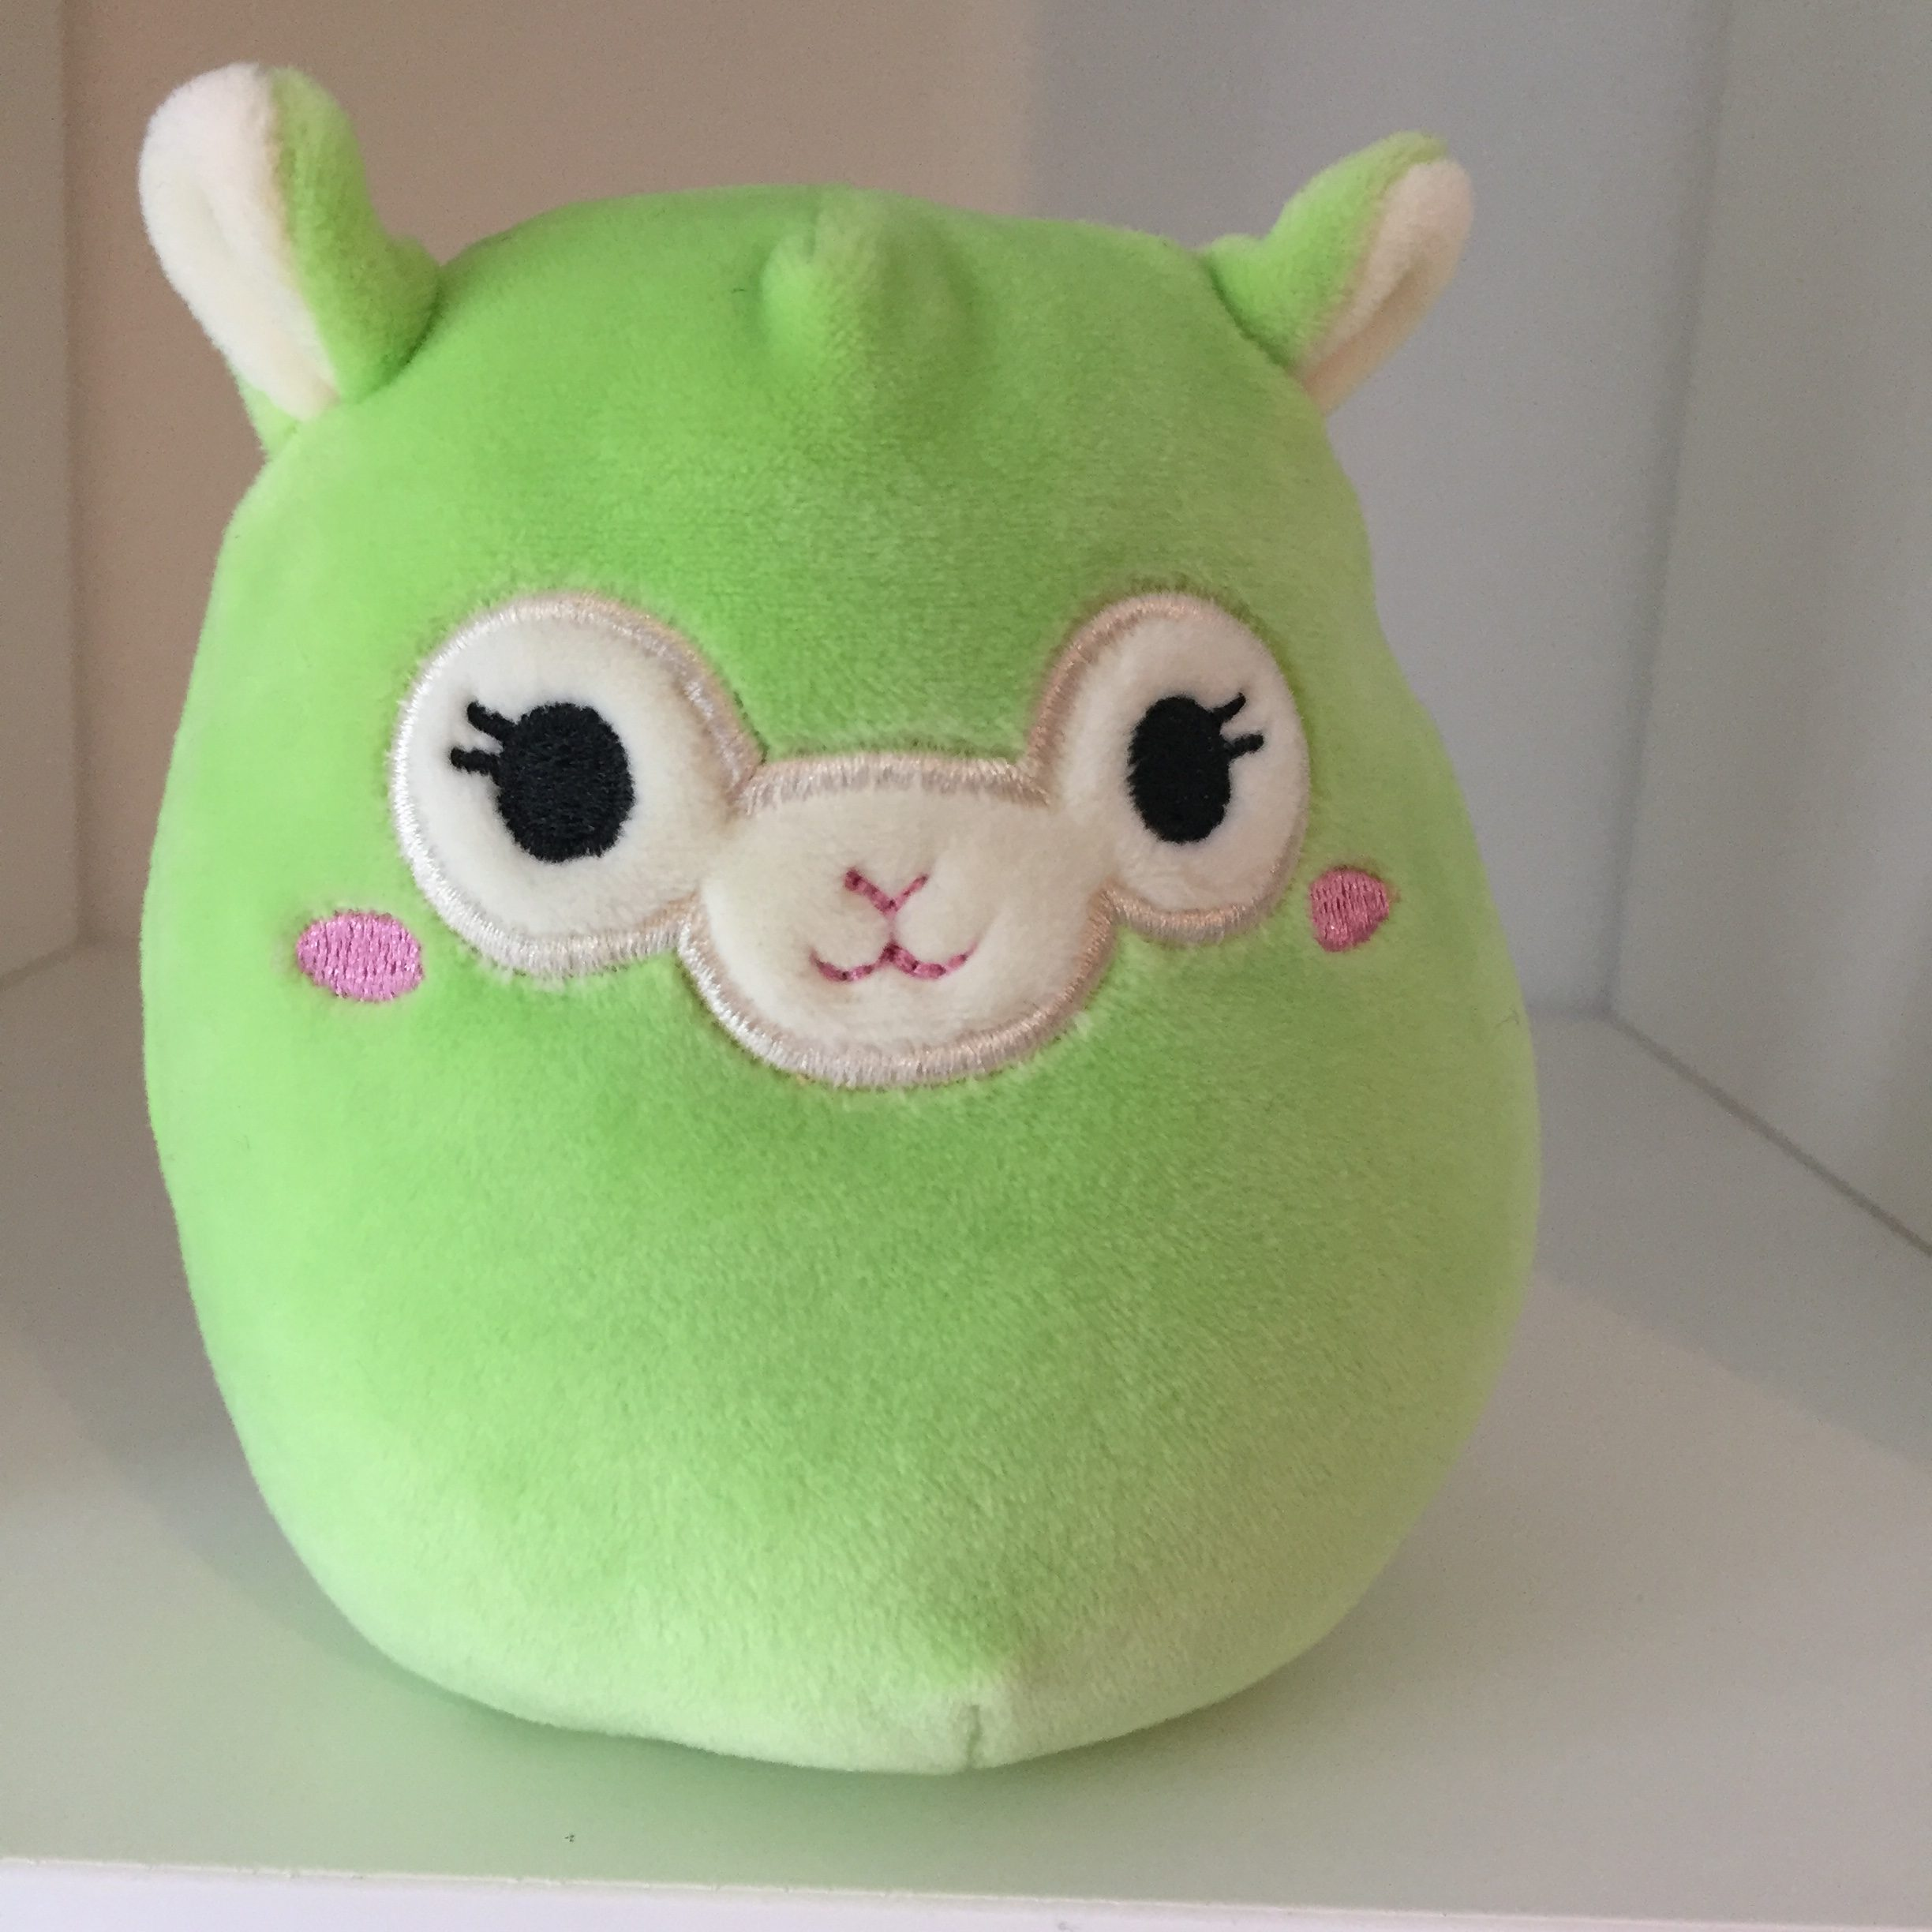 "Squishmallows Plush Toy - Llama (4.5""/11.4cm) - The Slime ..."